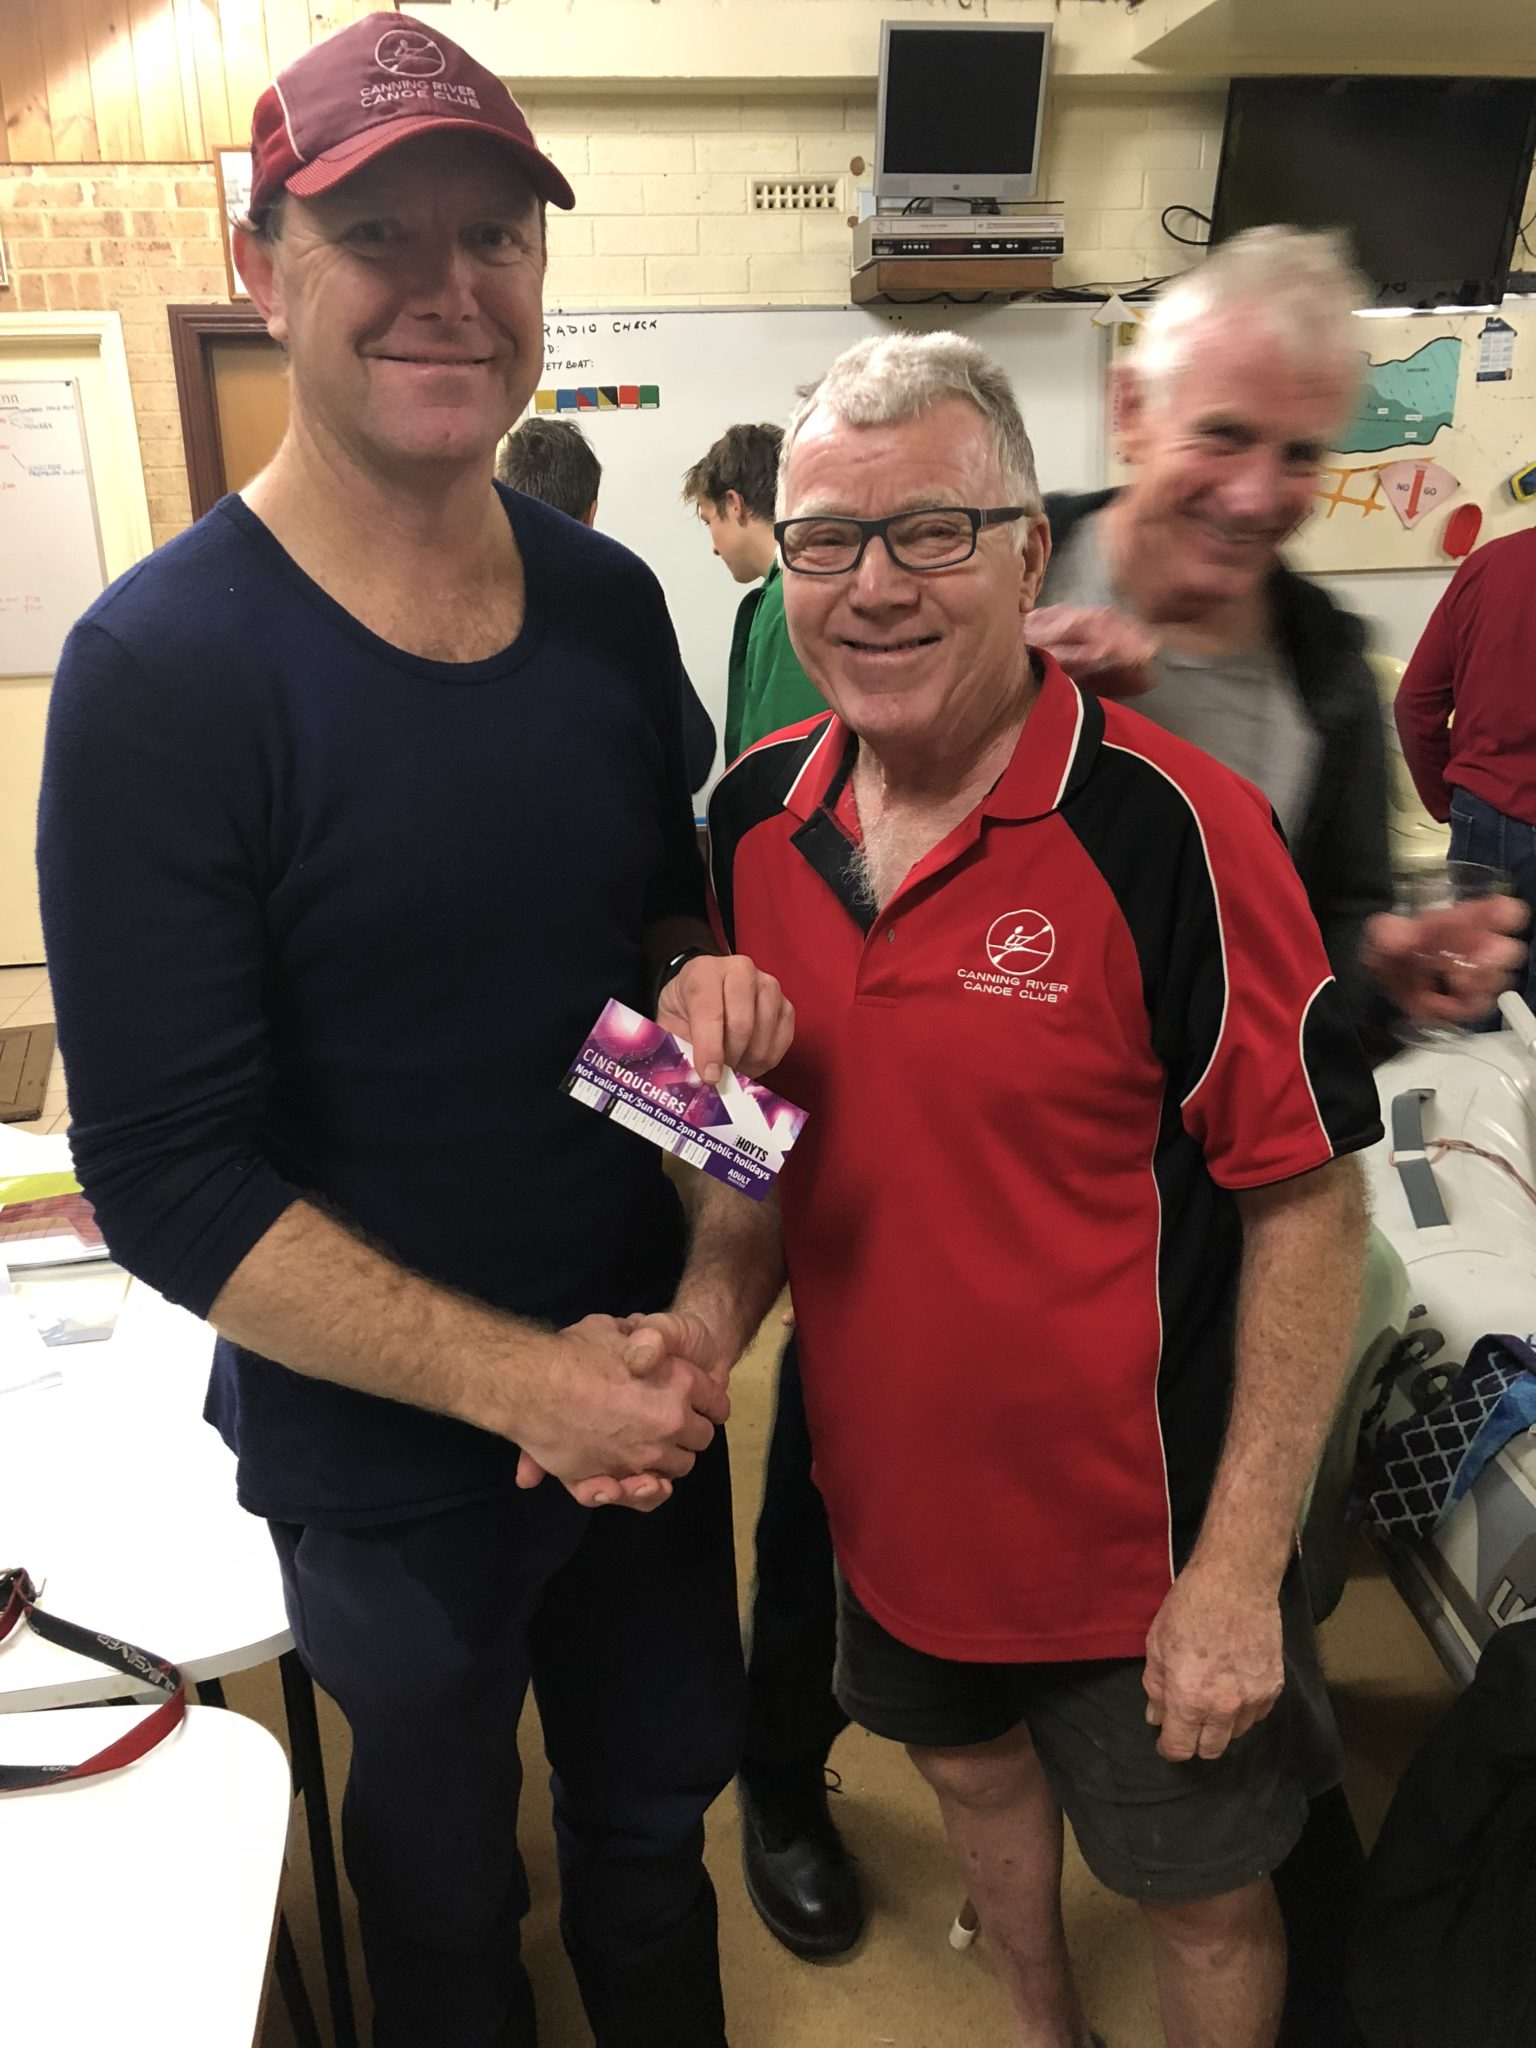 Tues 21st August 2018 : Tonight's photo shows club member David Gardiner presenting tonight's winner Simon O'Sullivan with a movie voucher.